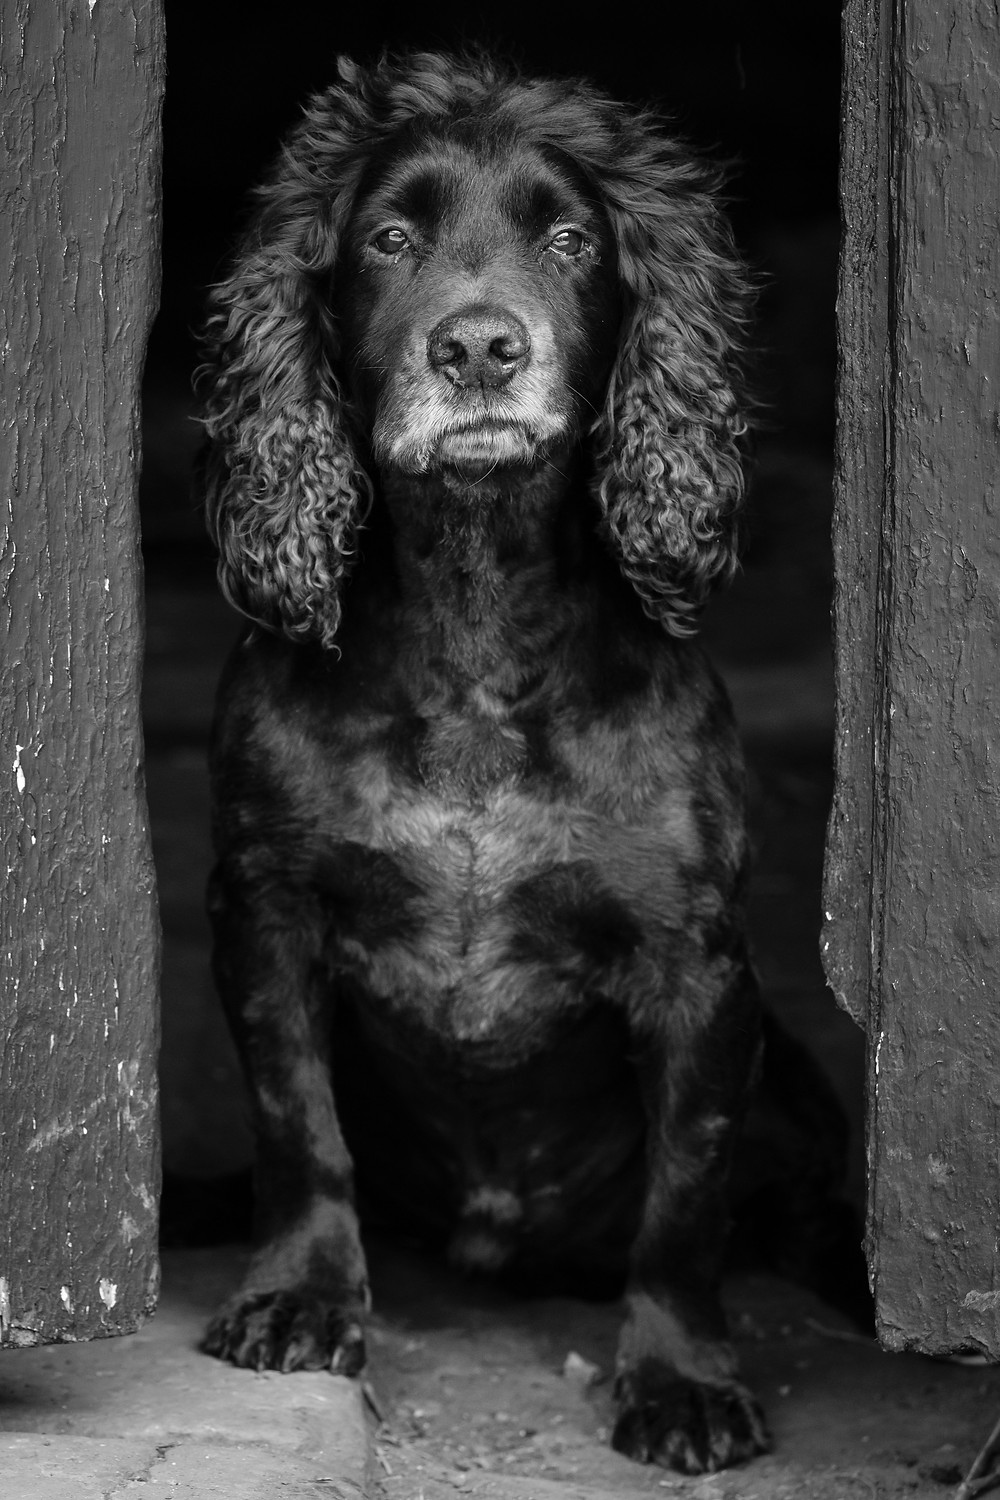 Dog pictures, dog photo's, dog potraits, dog photography, pet pictures, pet photo's, pet portraits, sheffield, penistone, holmfirth, glossop, buxton, huddersfield, barnsley, labradors, springers, cockers,